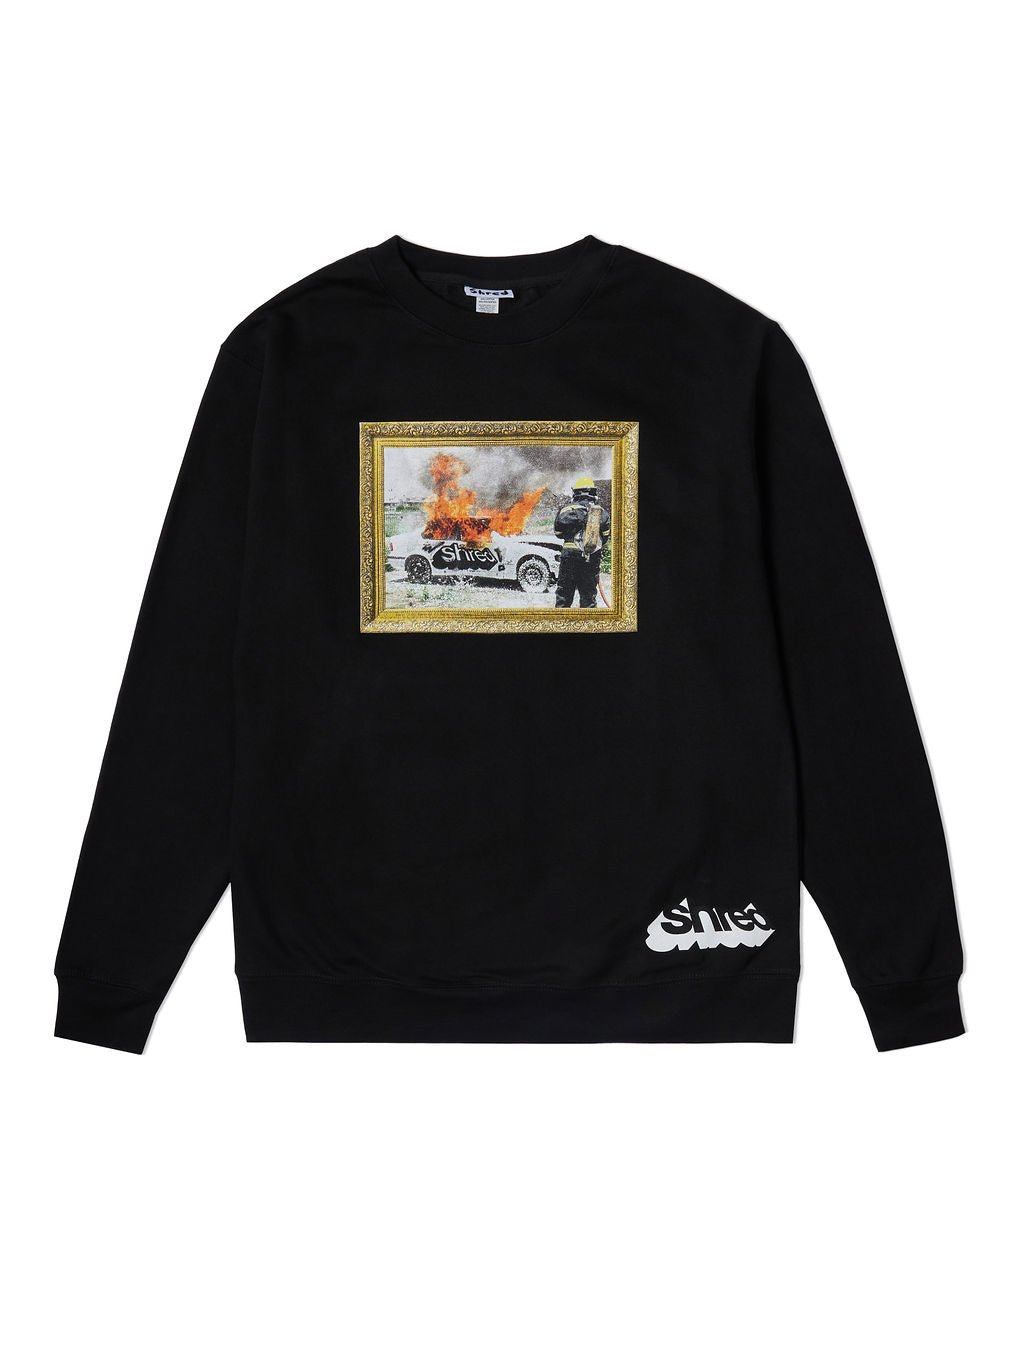 Car Fire Crewneck